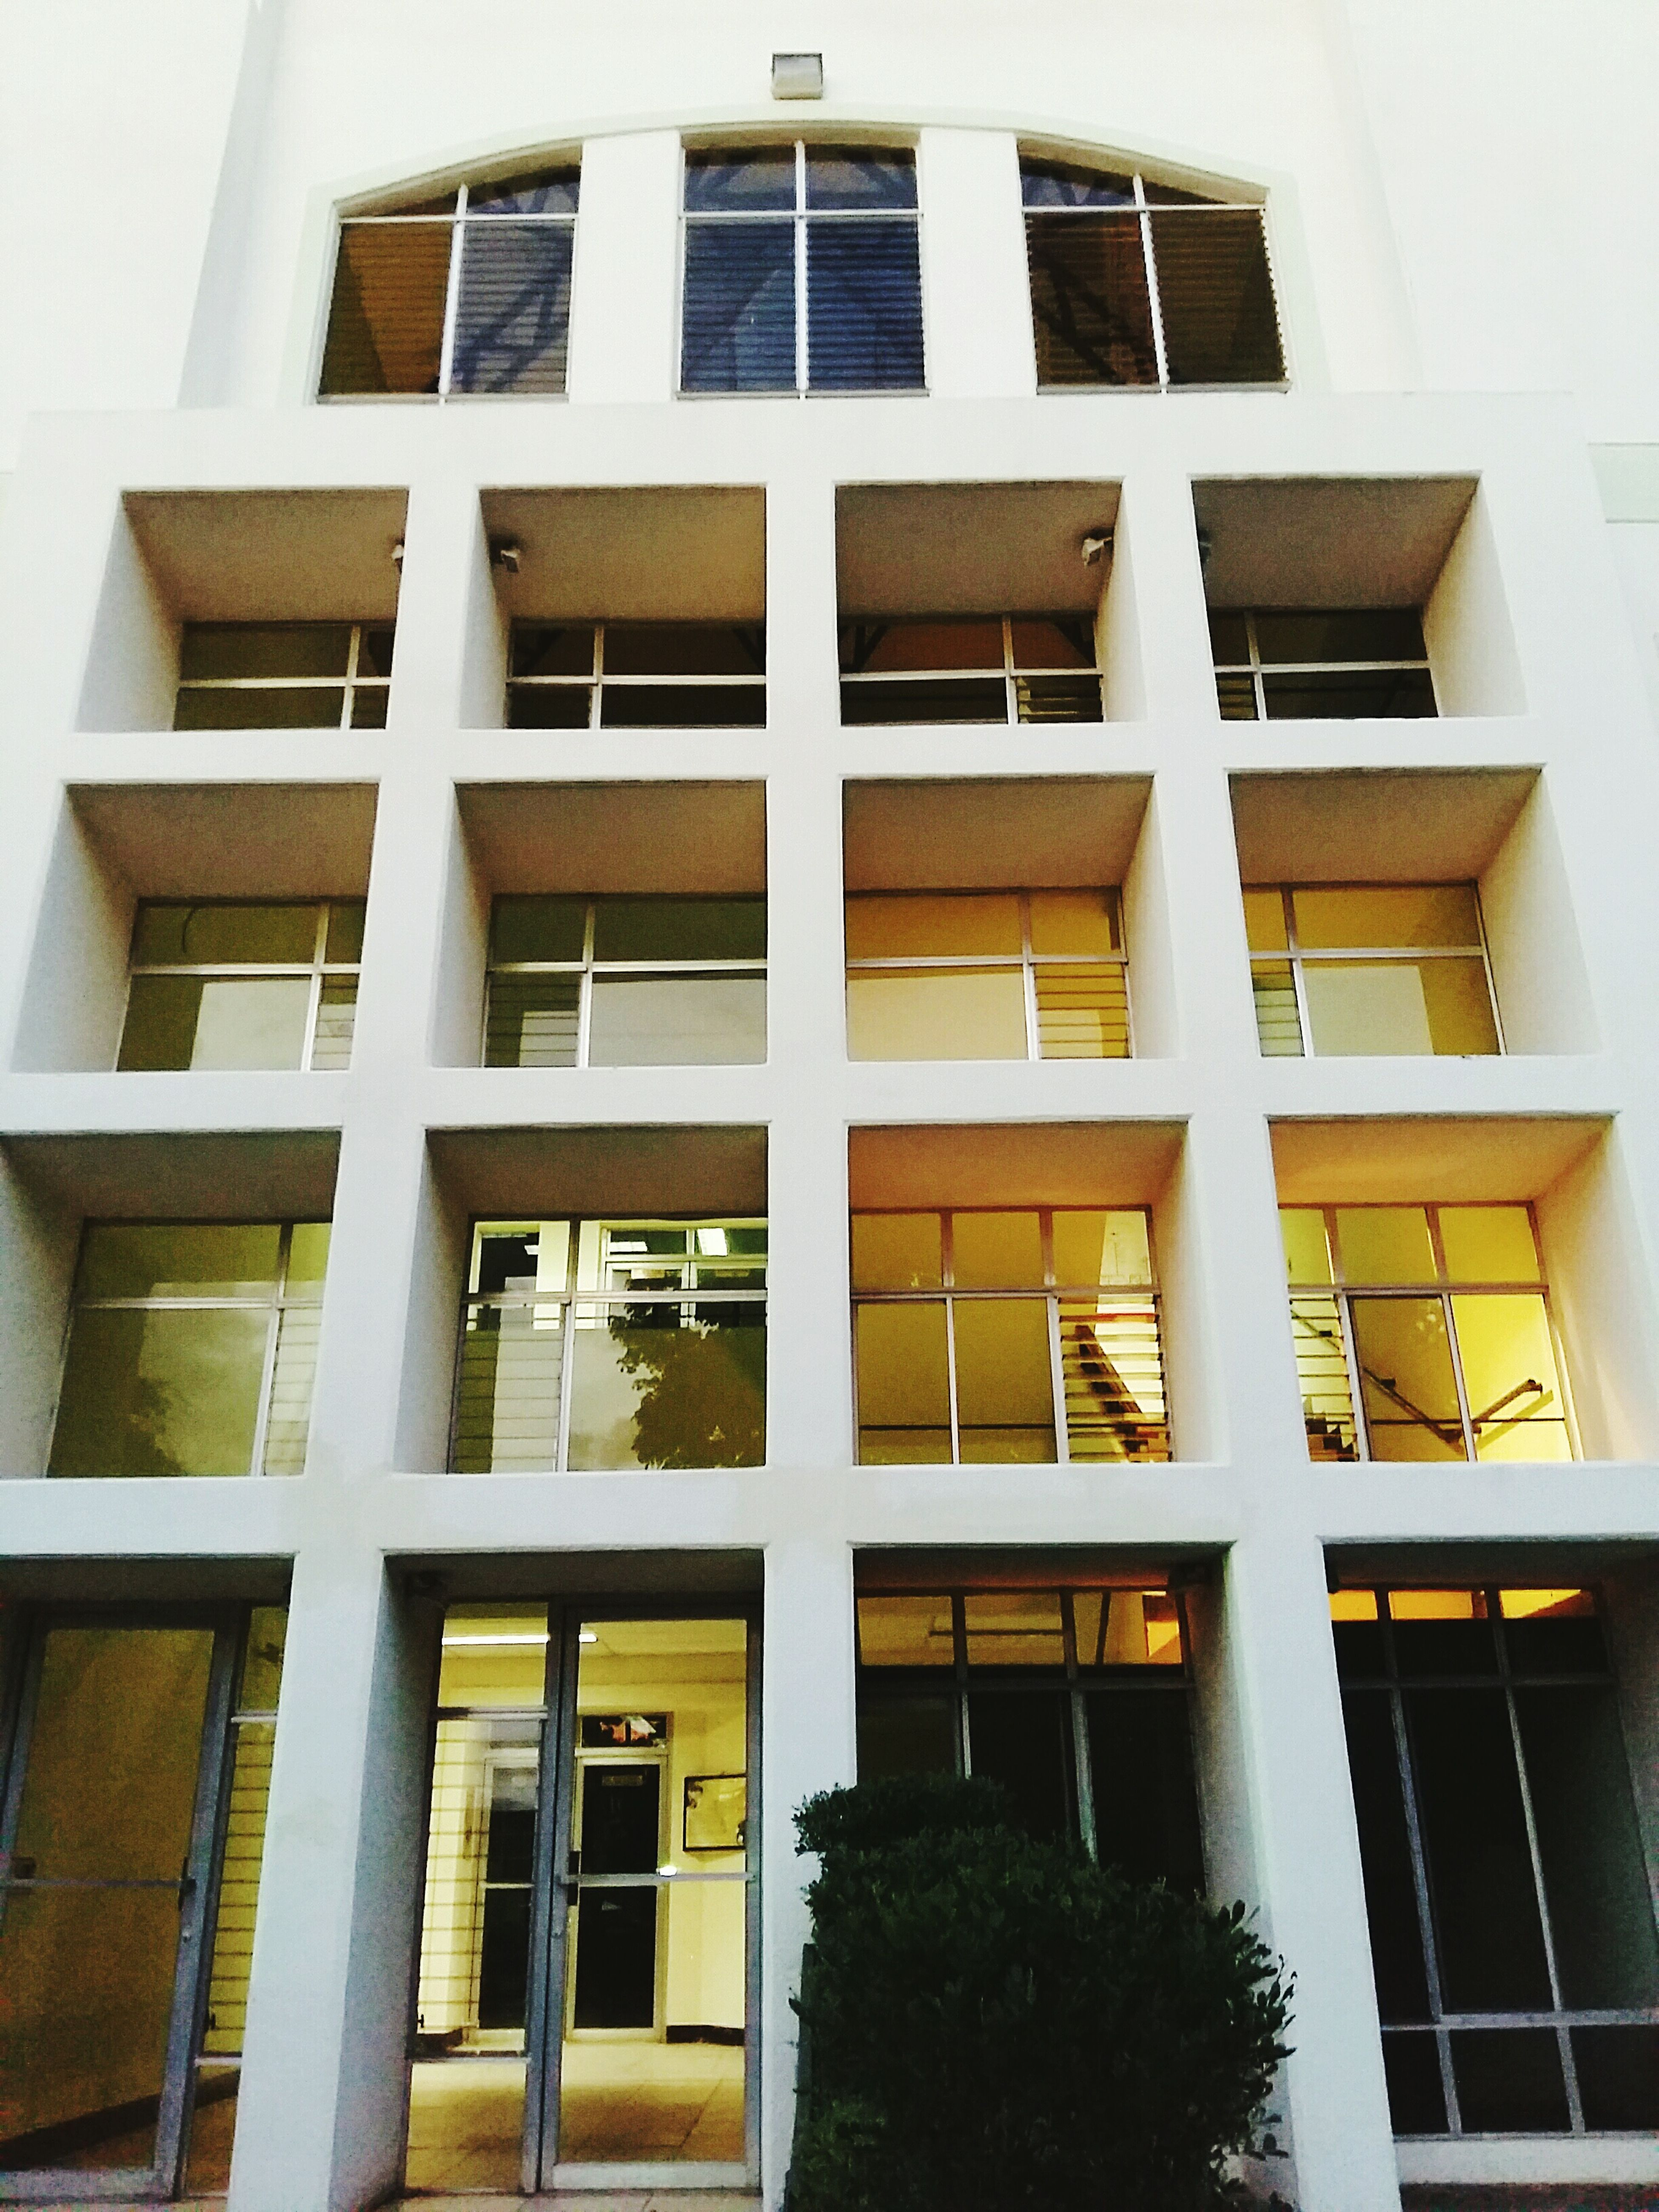 Arquitecture Windows White Bulding Contrast Photooftheday Streetphotography Light And Shadow College University